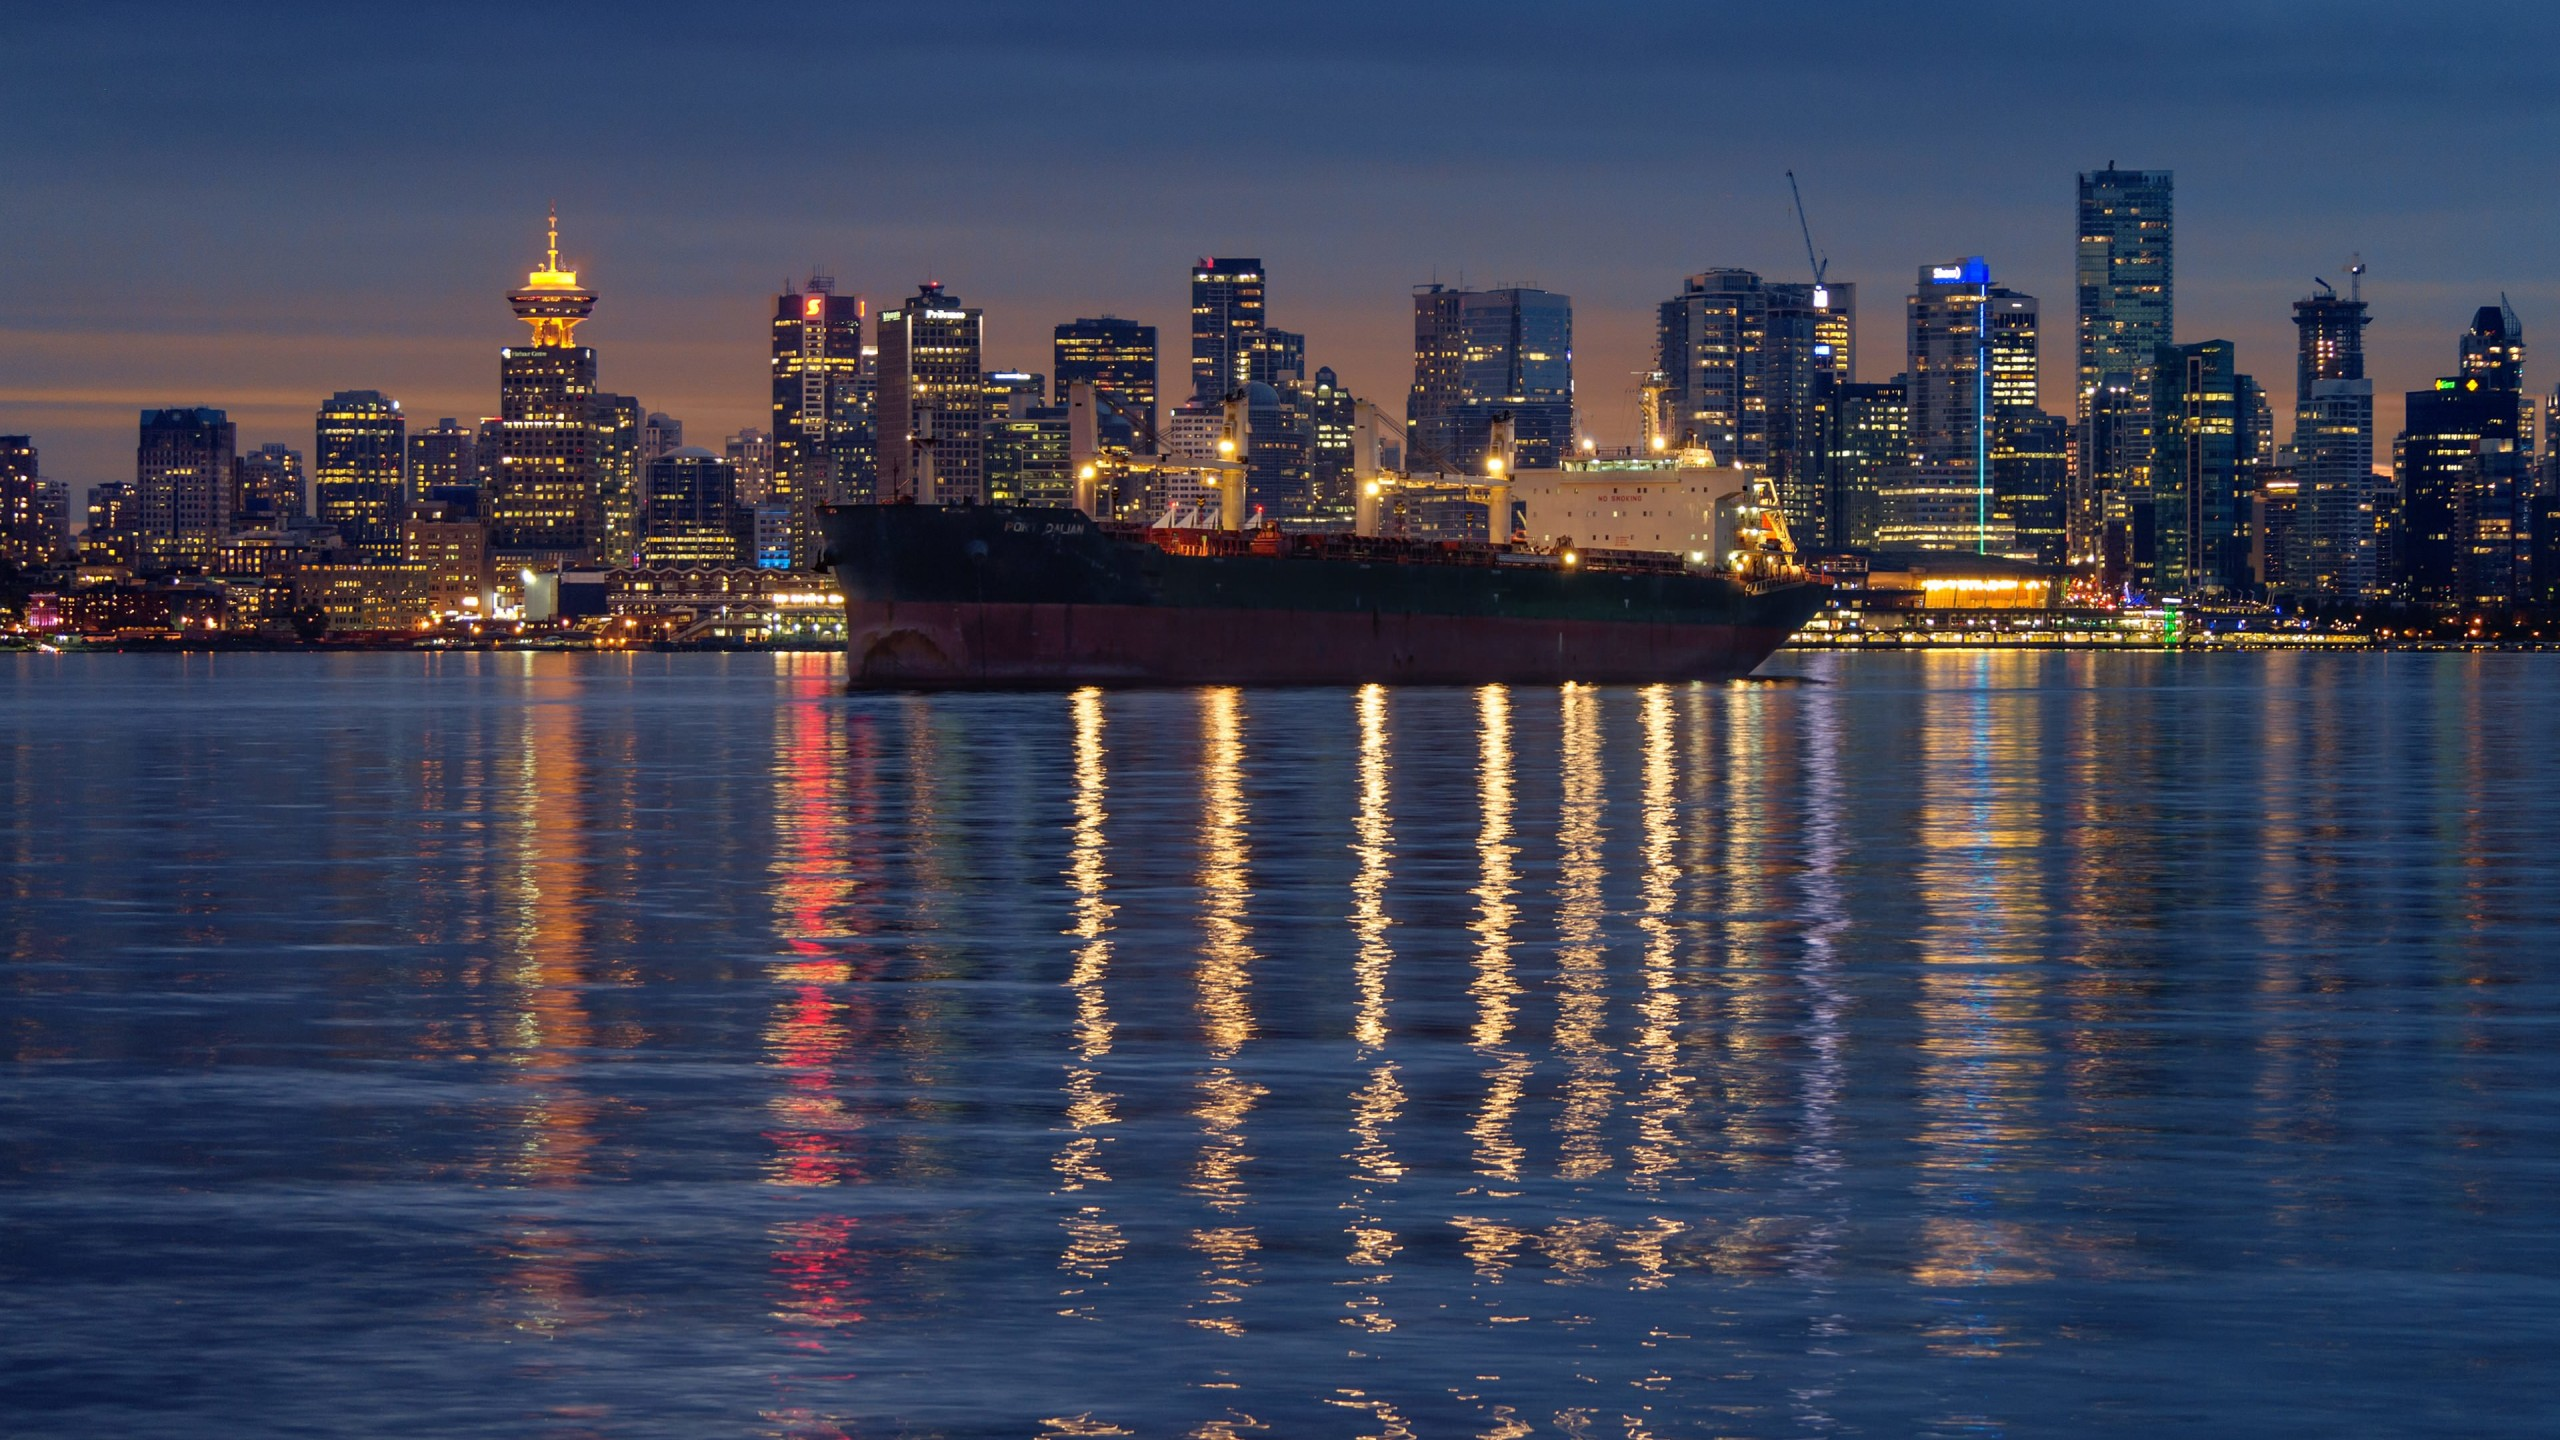 Downtown Vancouver, Canada Wallpaper for Social Media YouTube Channel Art